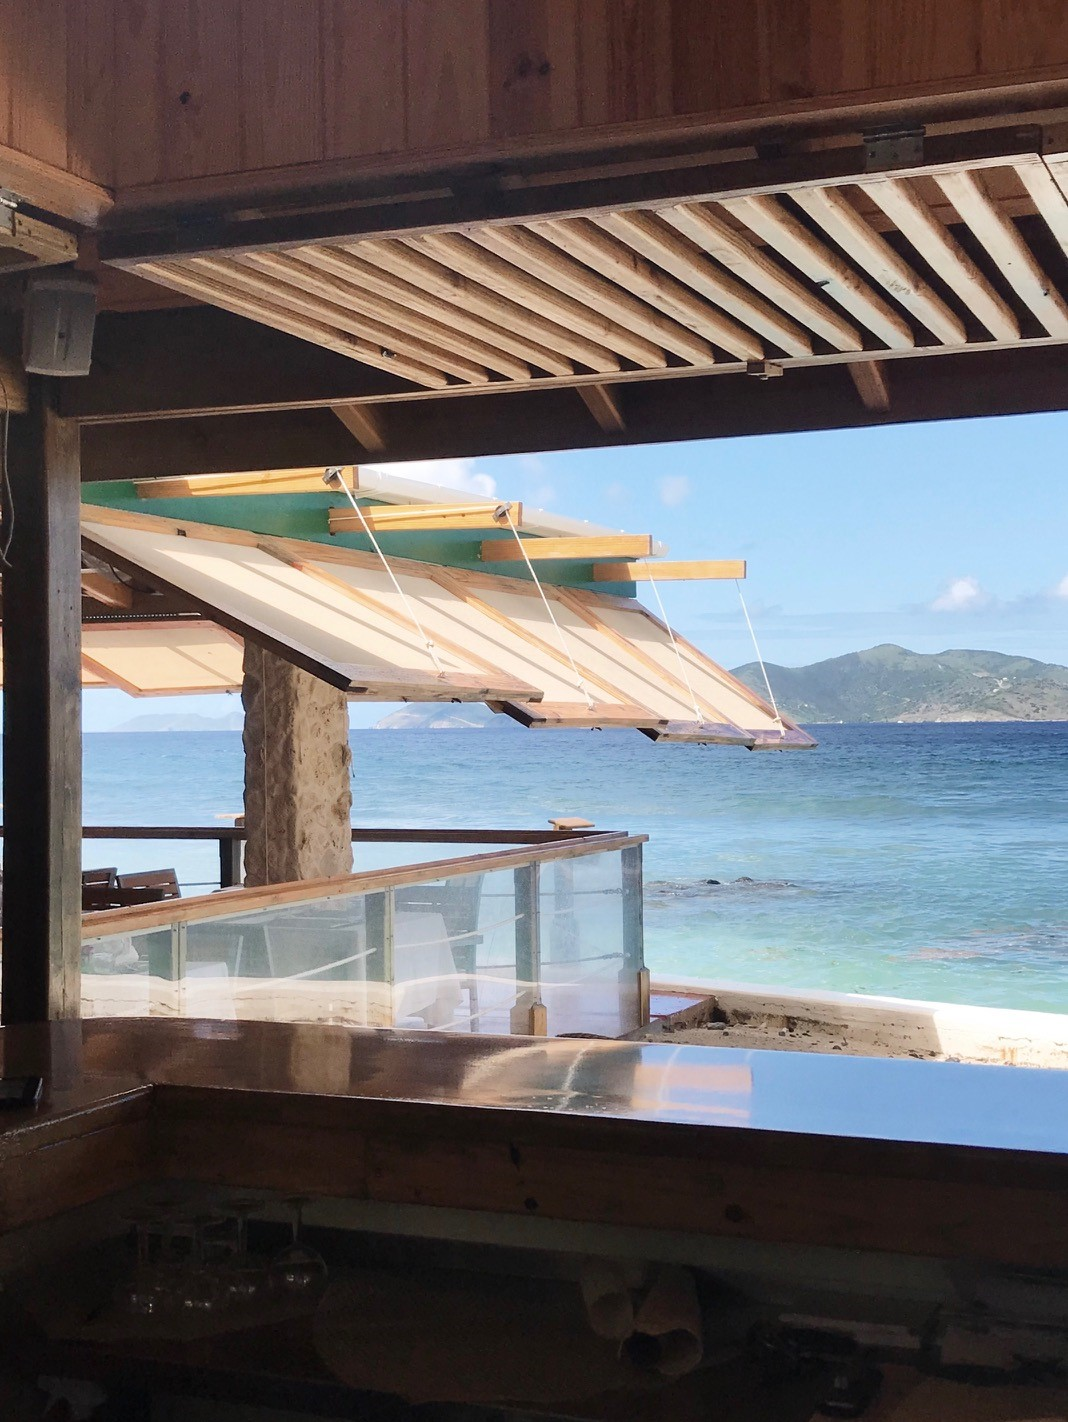 Brunch at Sugar Mill BVI - Views from the bar across the beach